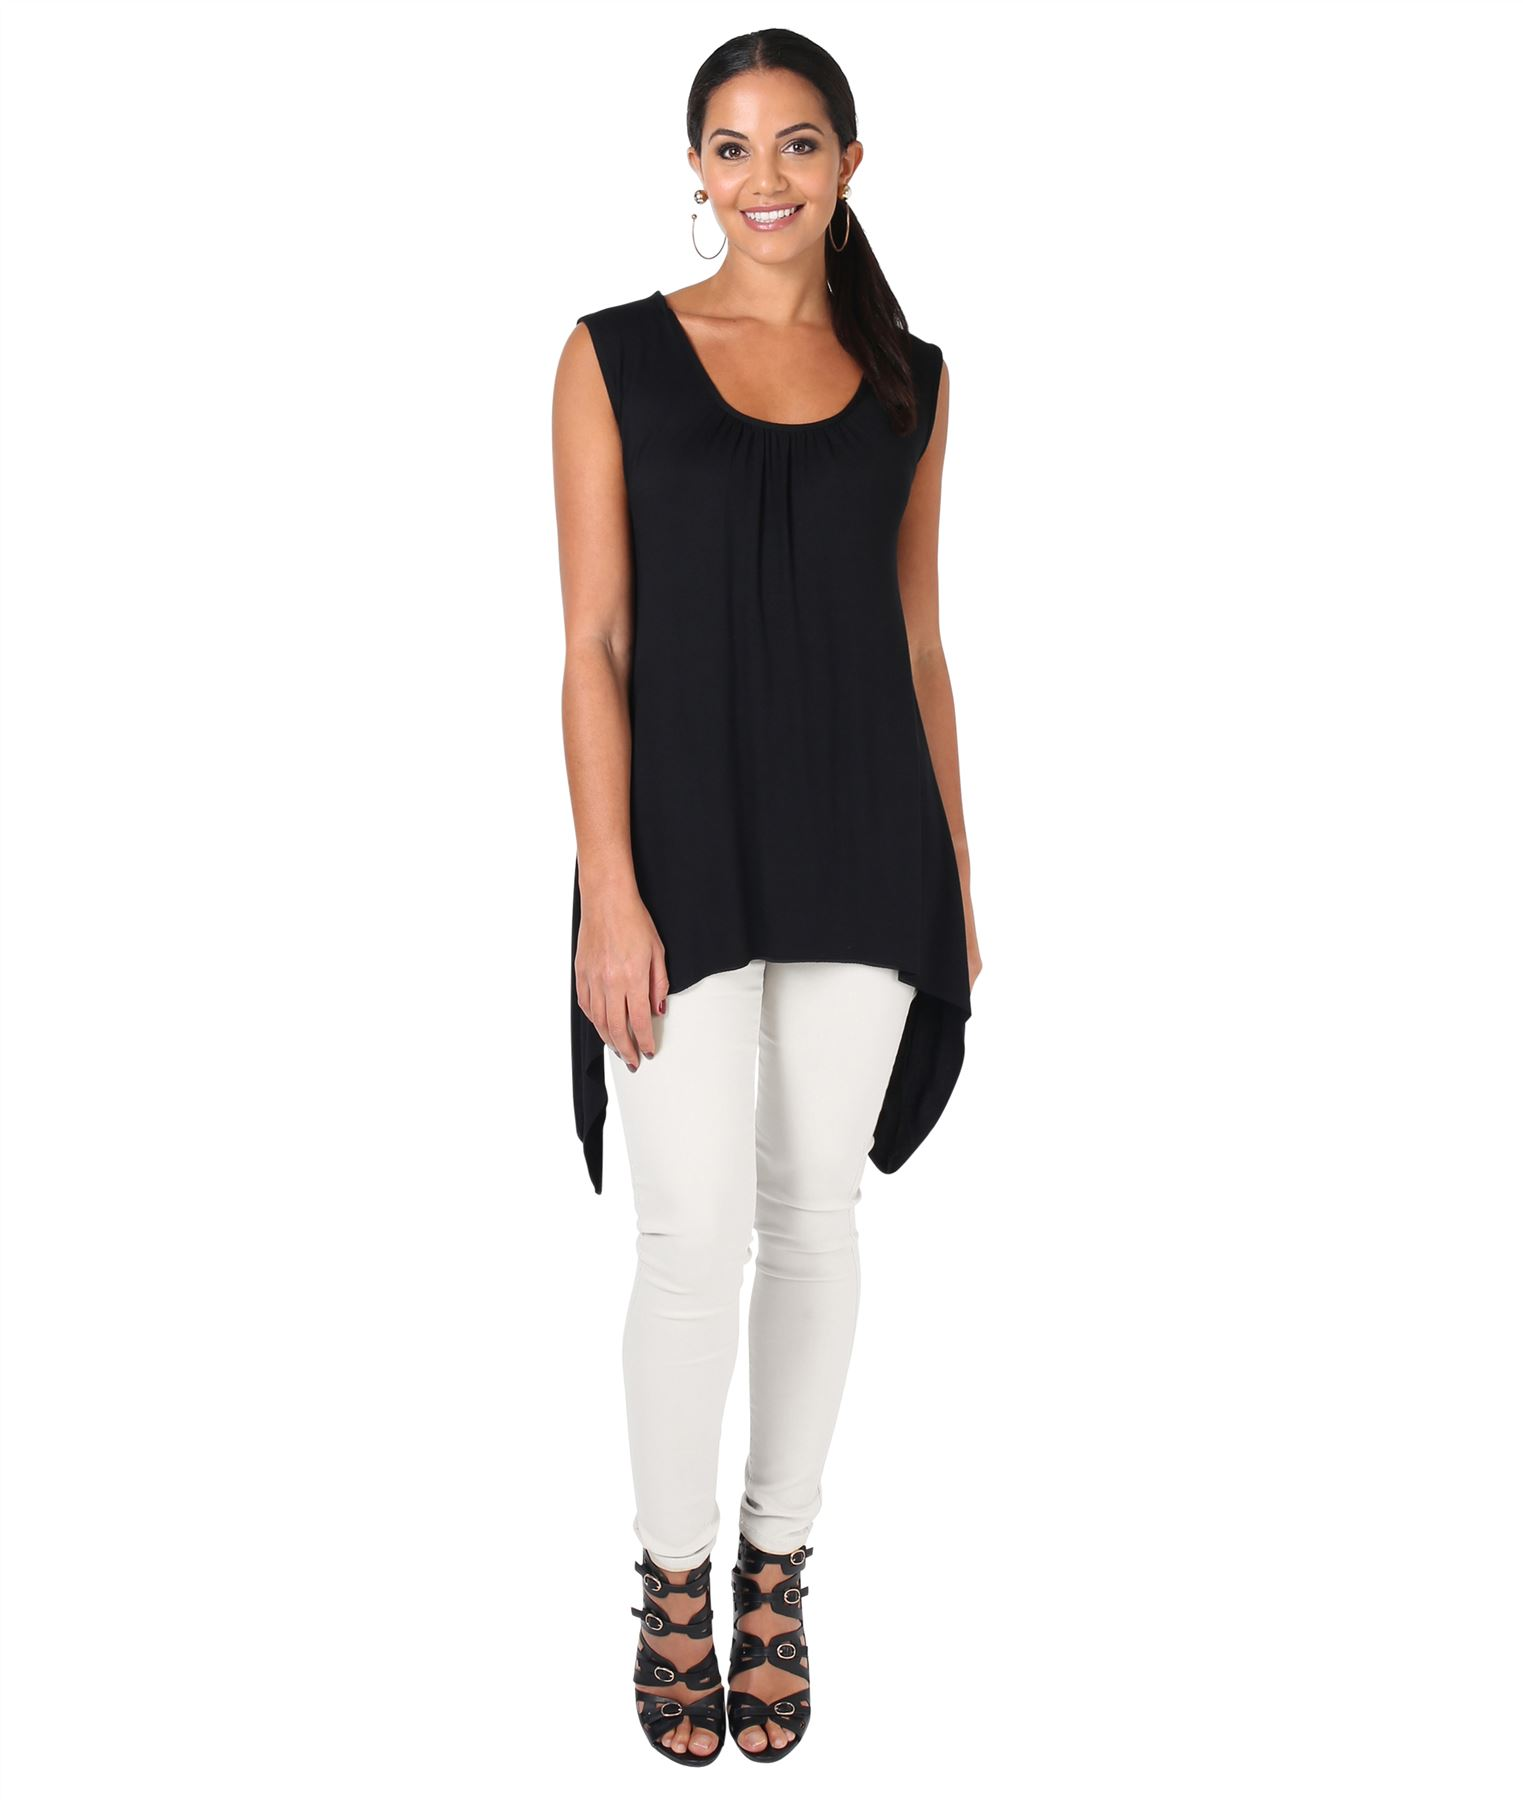 Women-Long-Top-Sleeveless-Pleated-Tee-Shirt-Tunic-Jersey-Stretch-Loose-Fit thumbnail 5